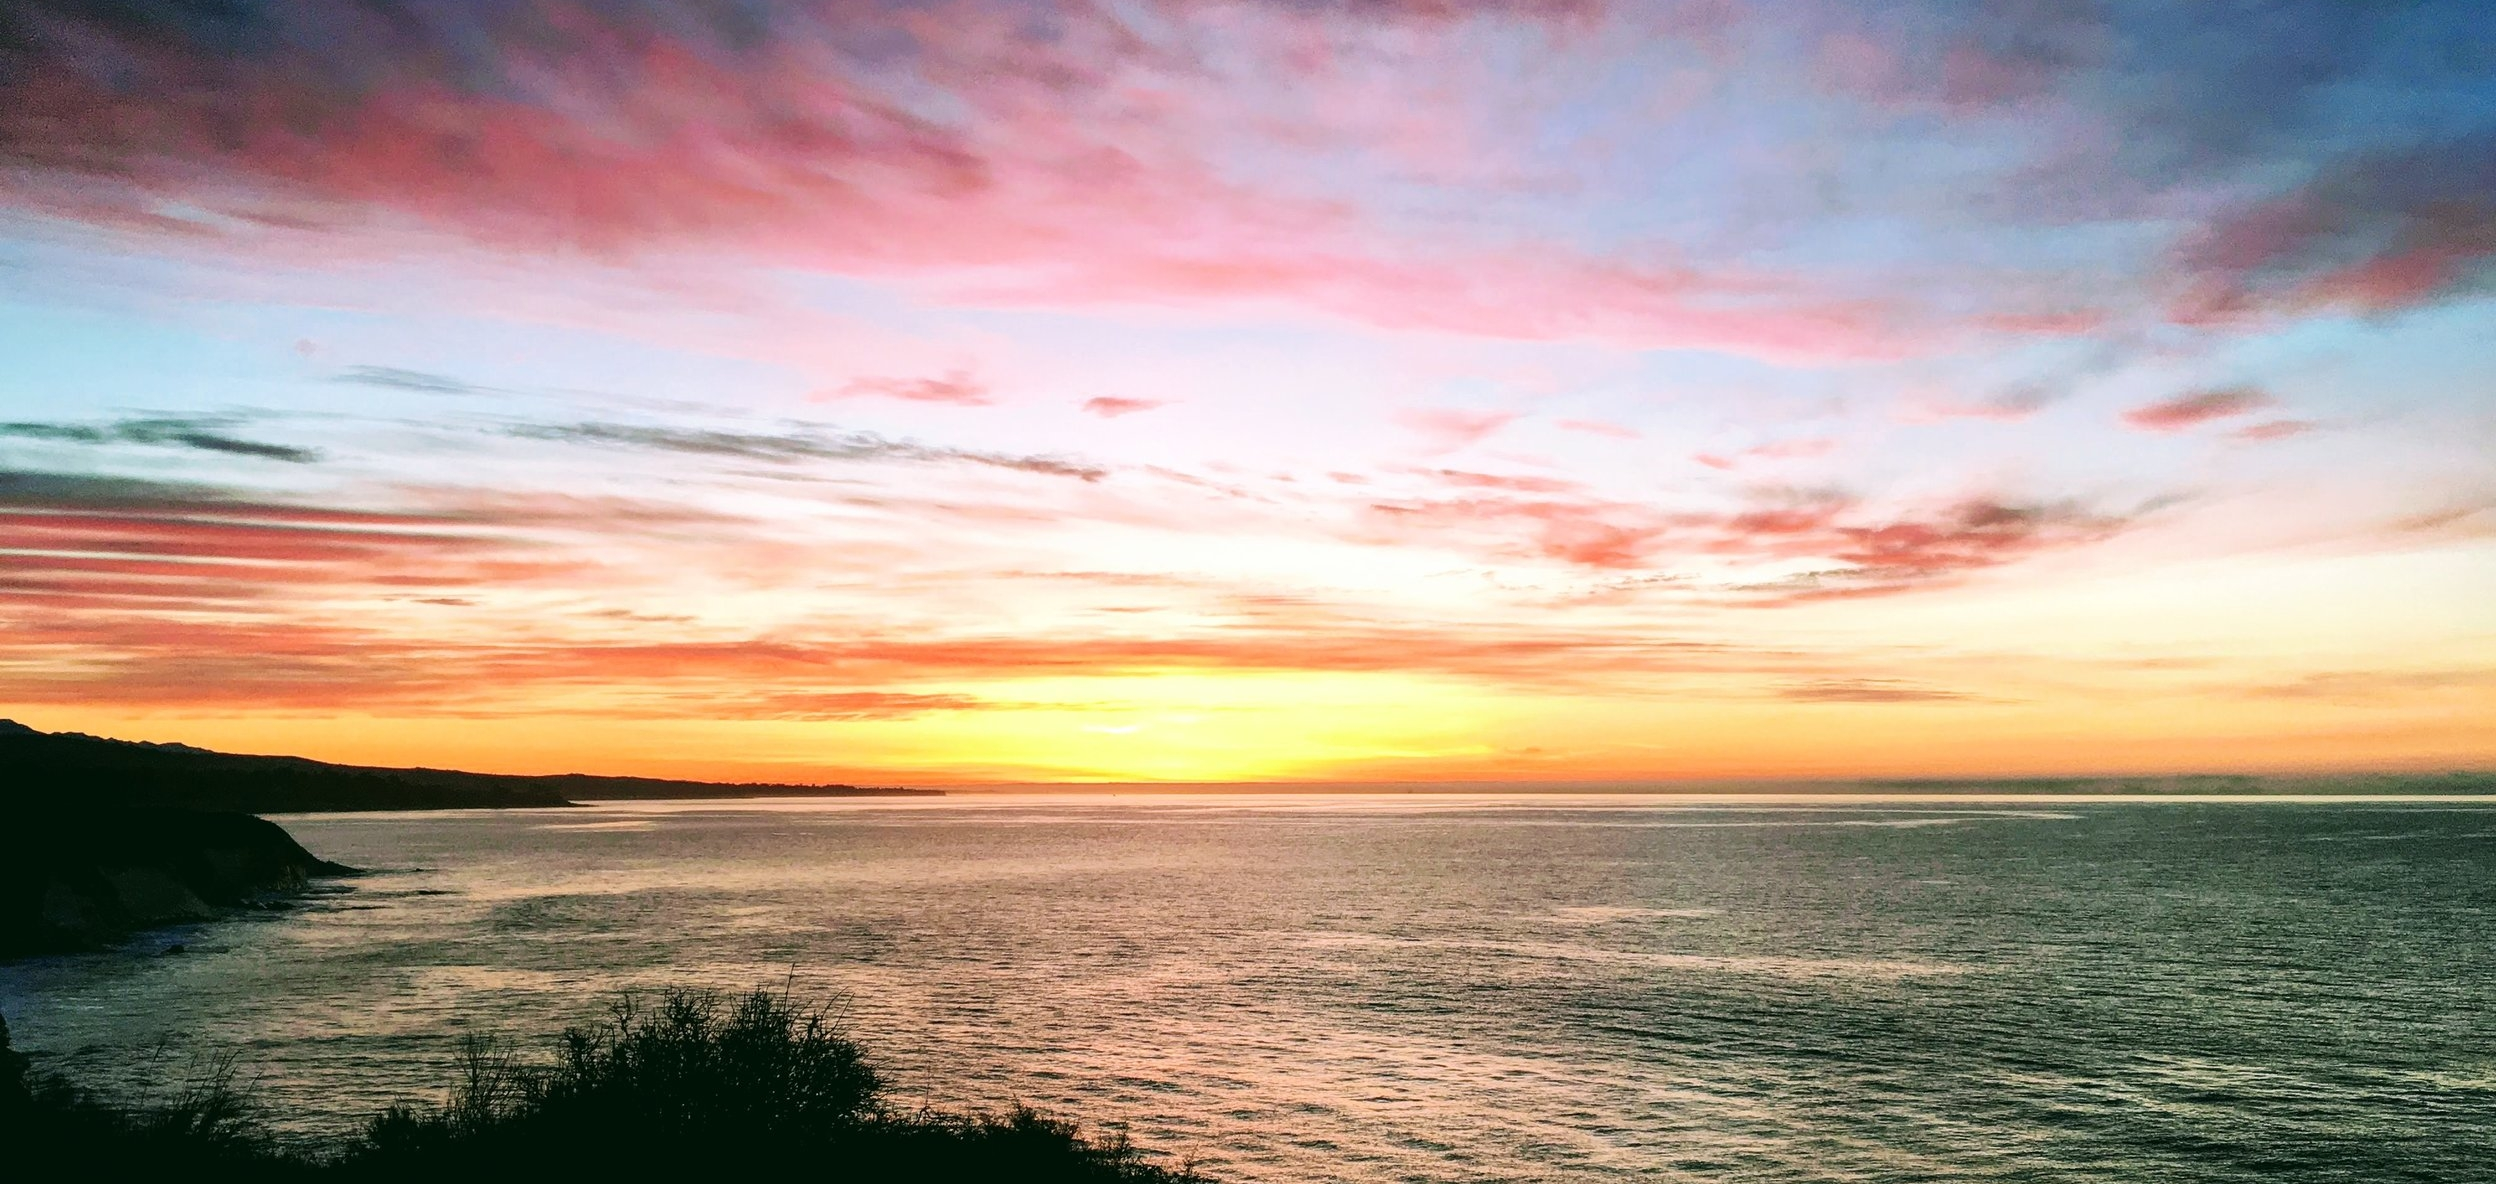 January sunrise over the Pacific Ocean in Santa Barbara, CA (2018)